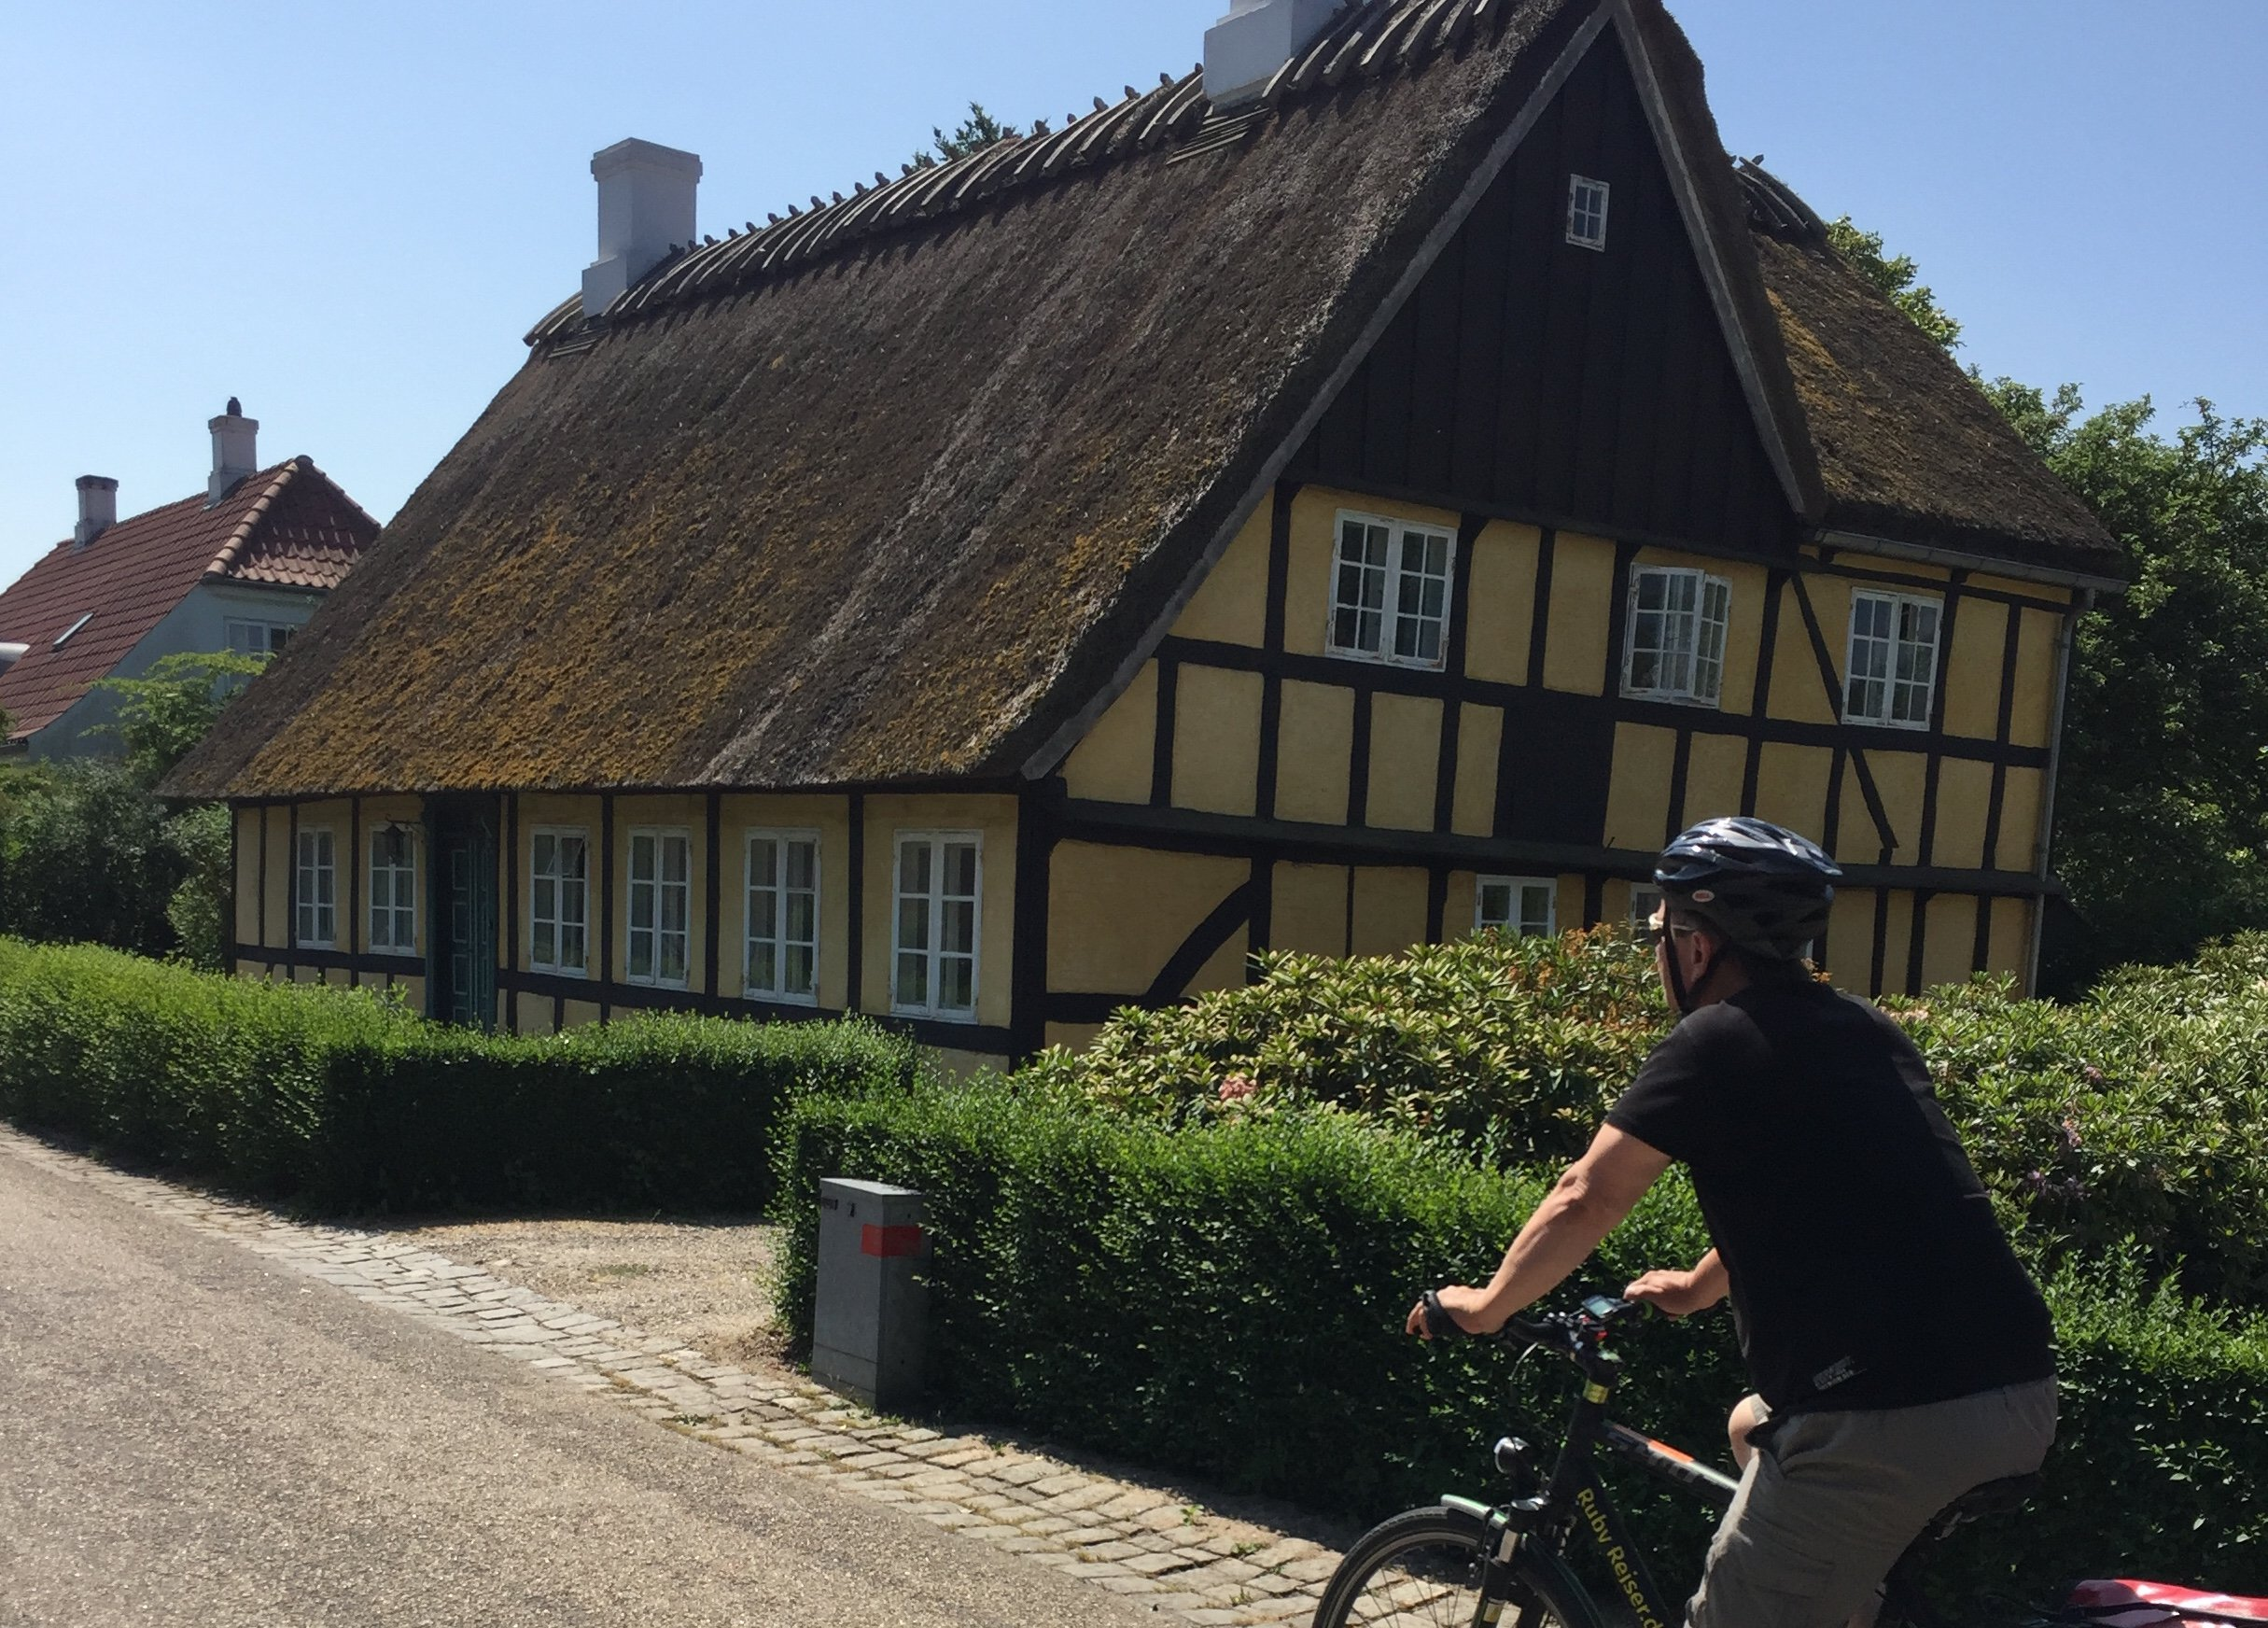 Bike holiday Denmark - Funen Roundtrip 8 days